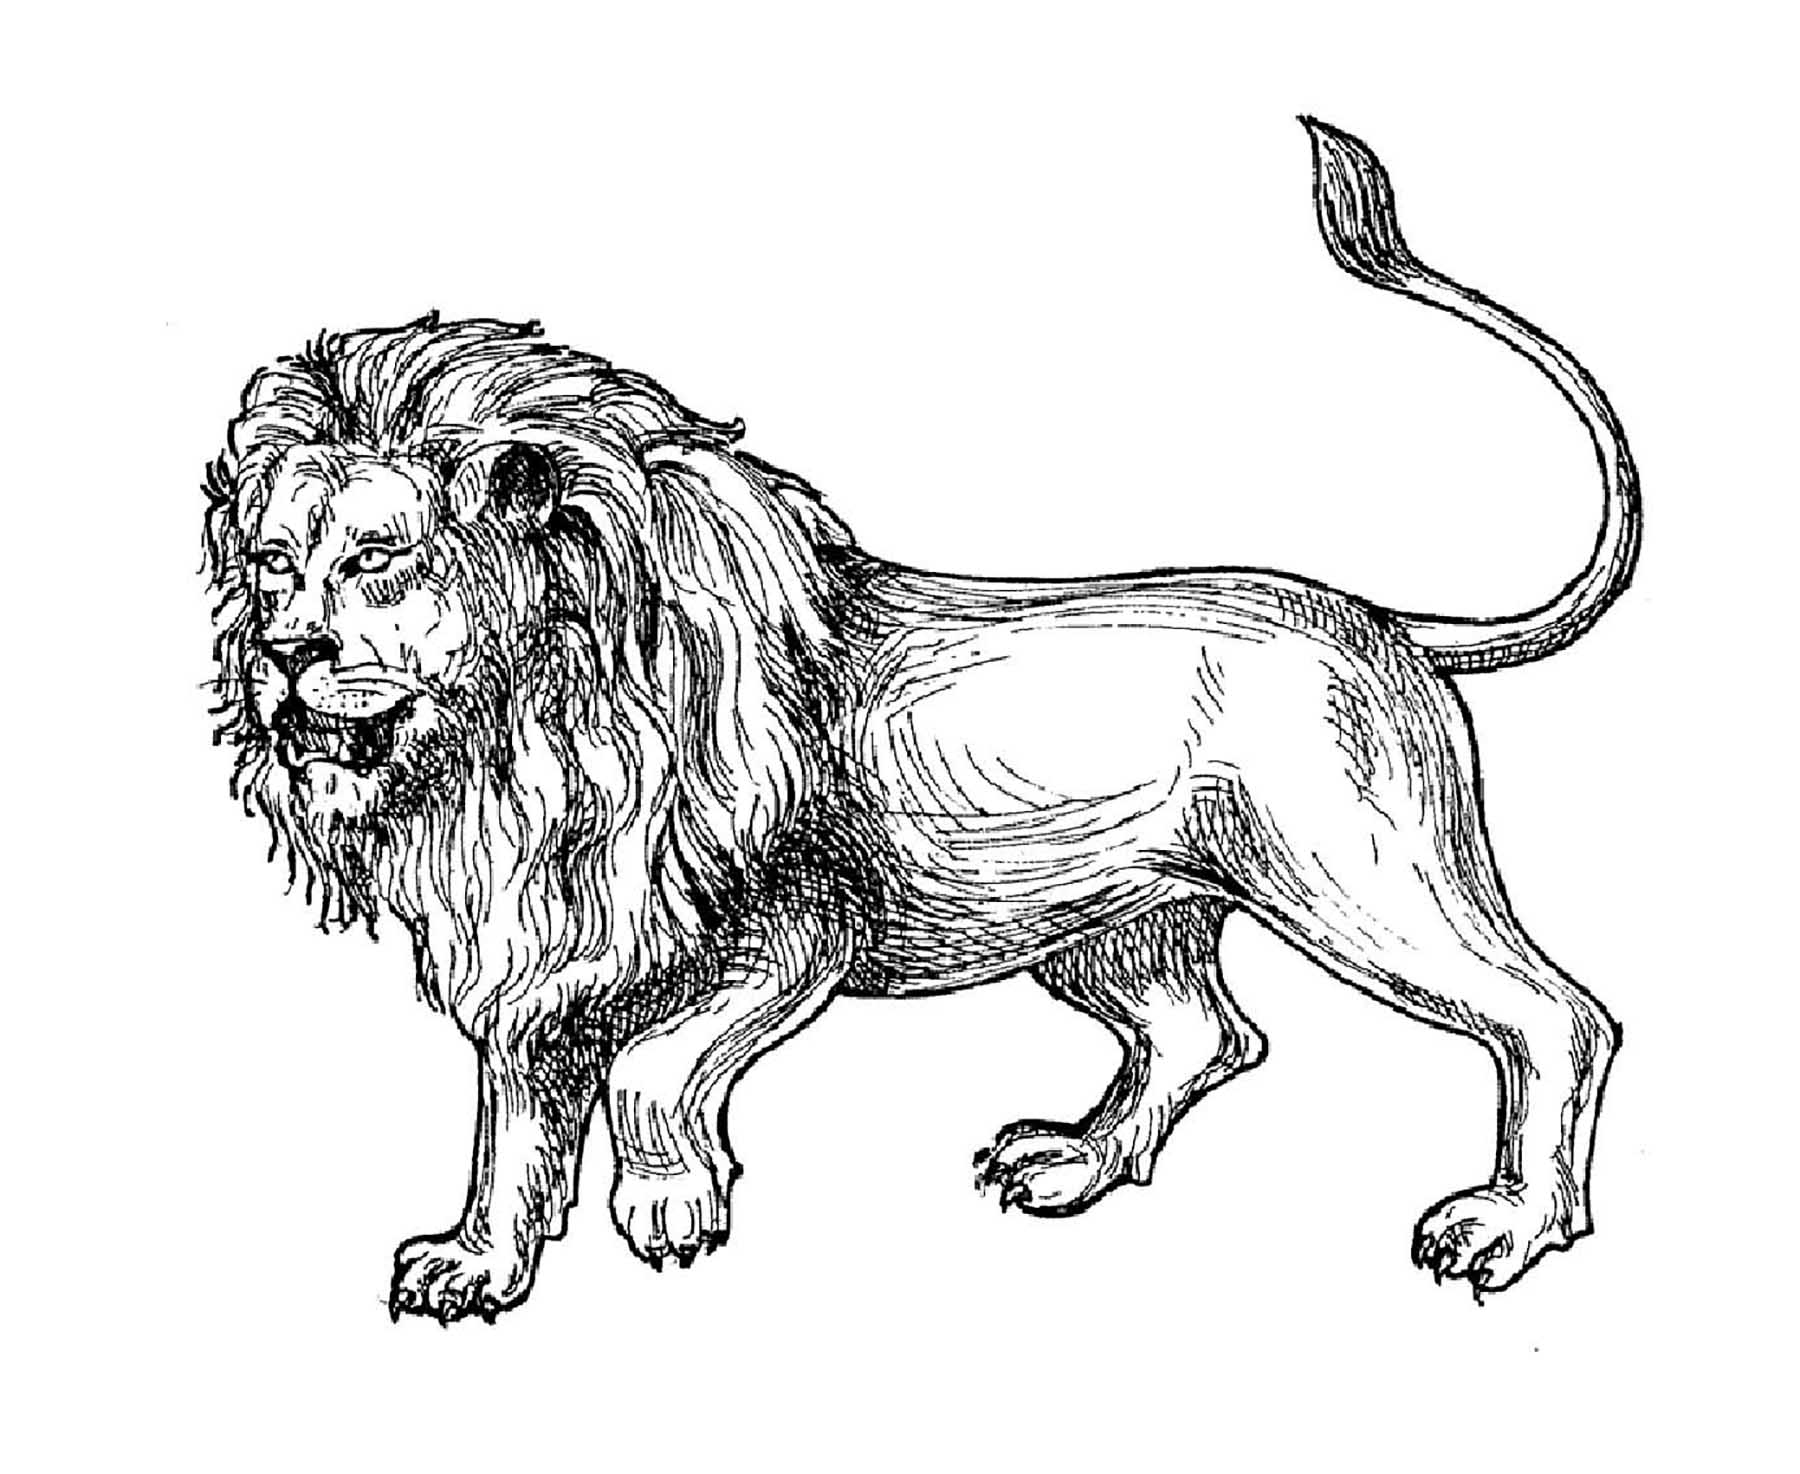 coloring lion pages 3 printable pages for coloring for lion lovers coloring etsy lion pages coloring